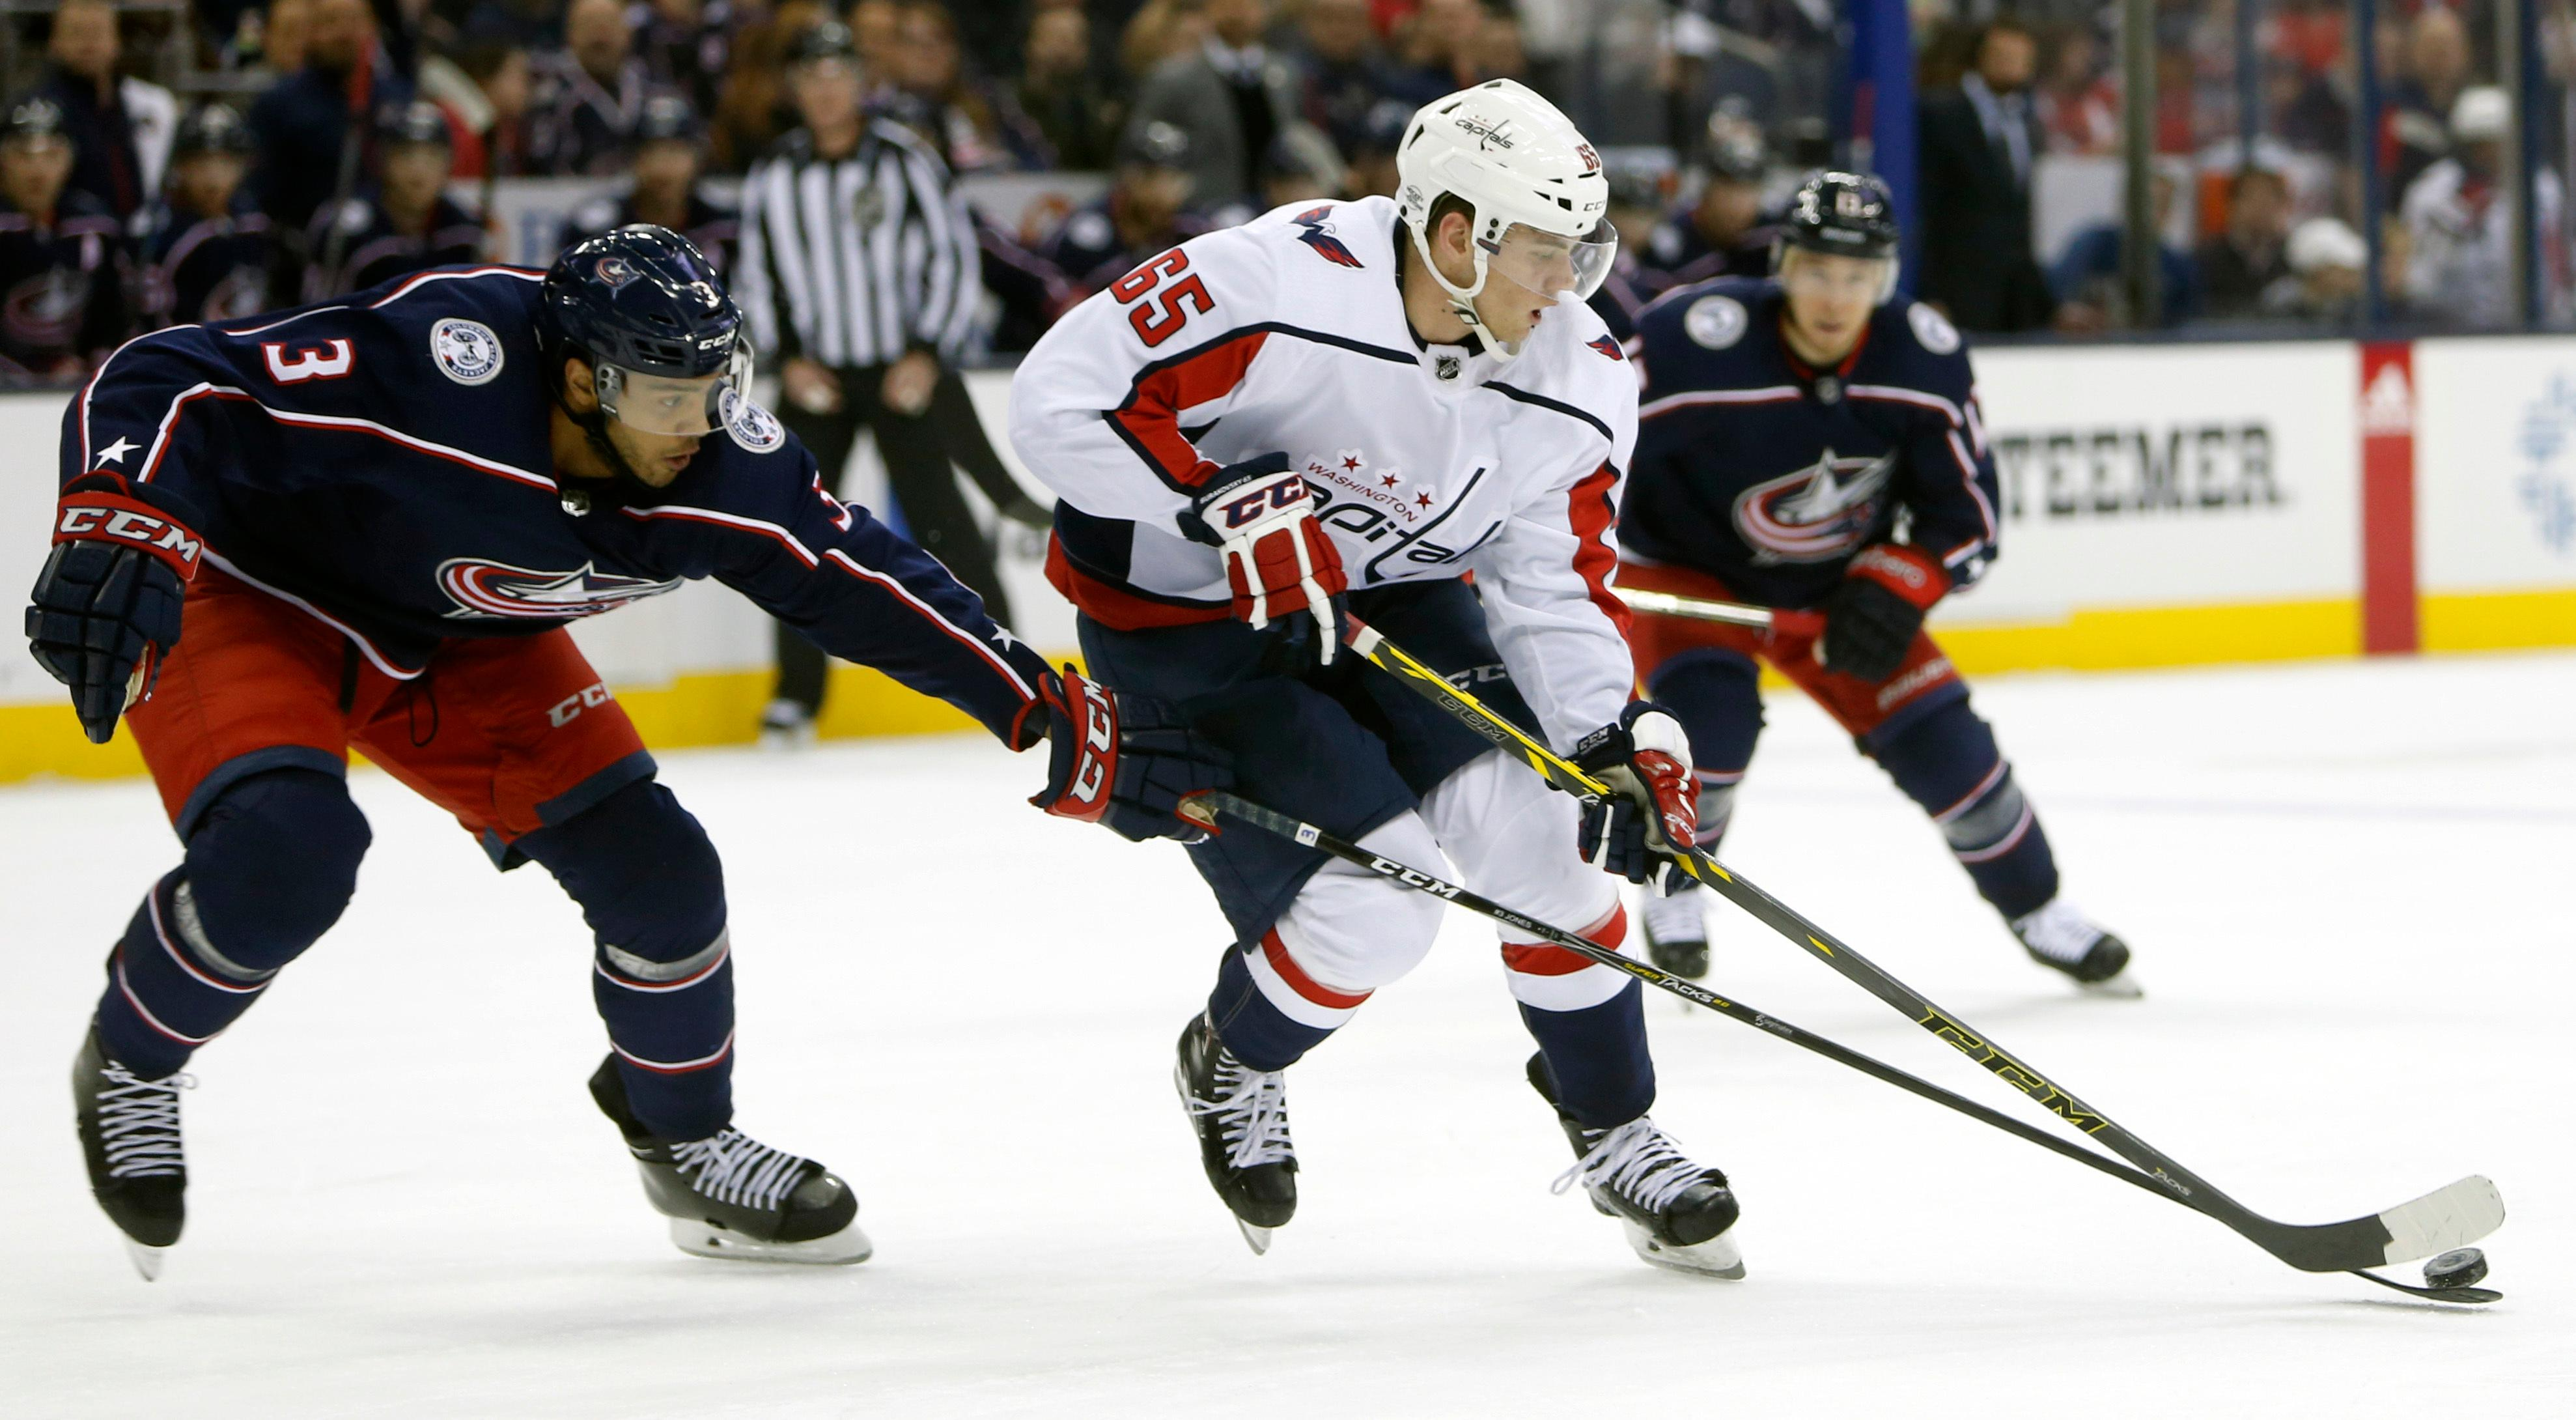 Washington Capitals' Andre Burakovsky, right, of Austria, looks for an open shot as Columbus Blue Jackets' Seth Jones defends during the first period of an NHL hockey game Tuesday, Feb. 6, 2018, in Columbus, Ohio. (AP Photo/Jay LaPrete)